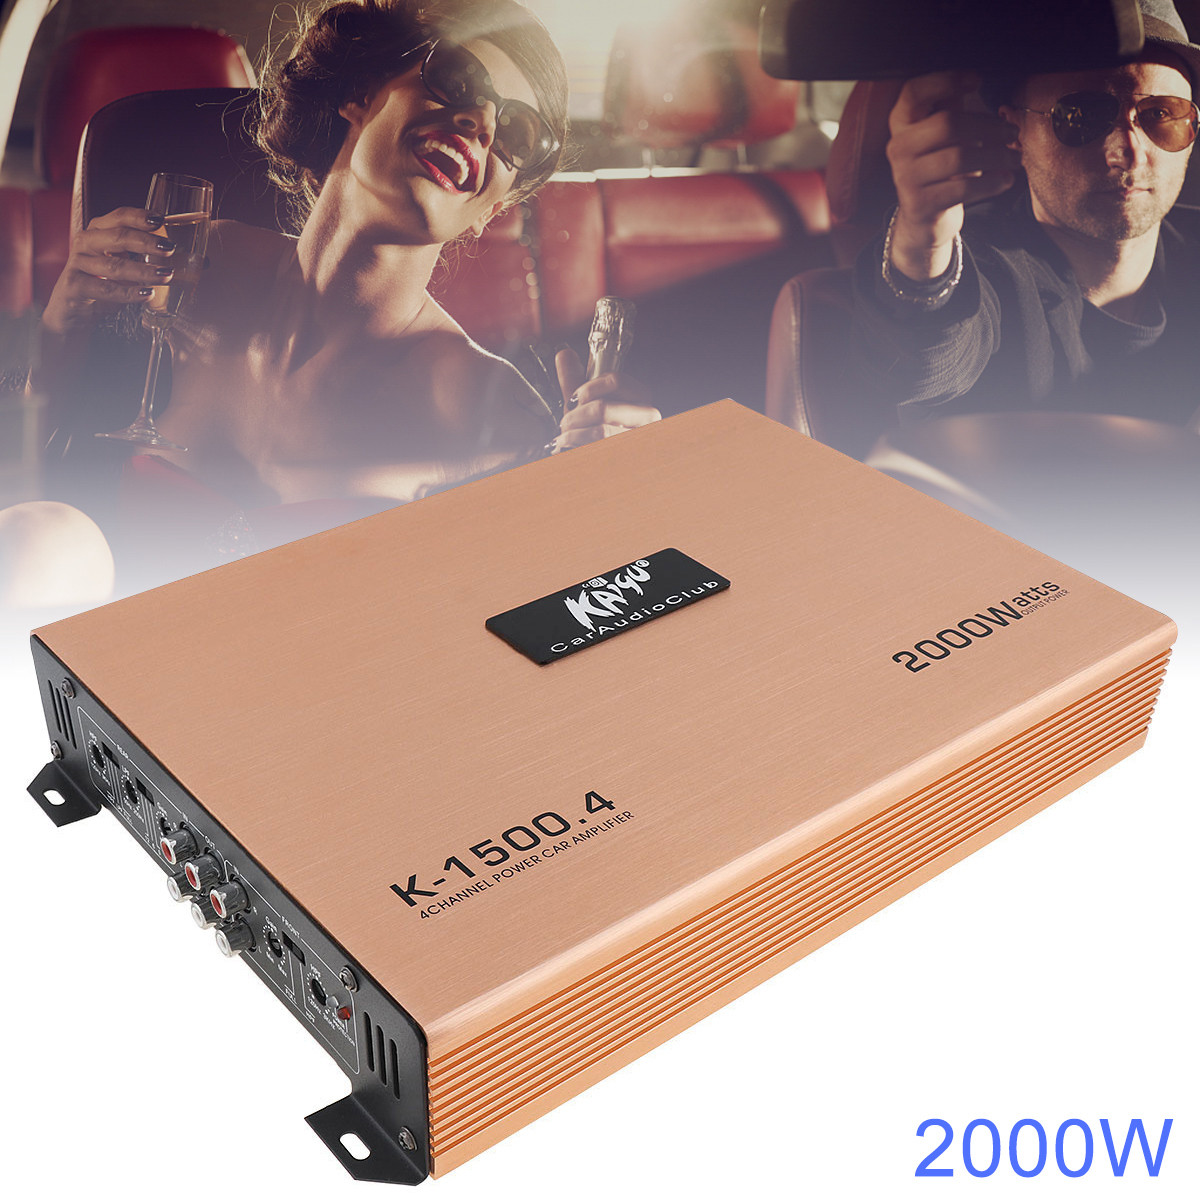 2000W Class AB Digital Car Amplifier 4 Channel Aluminum Alloy High Power Home Car Stereo Amplifier